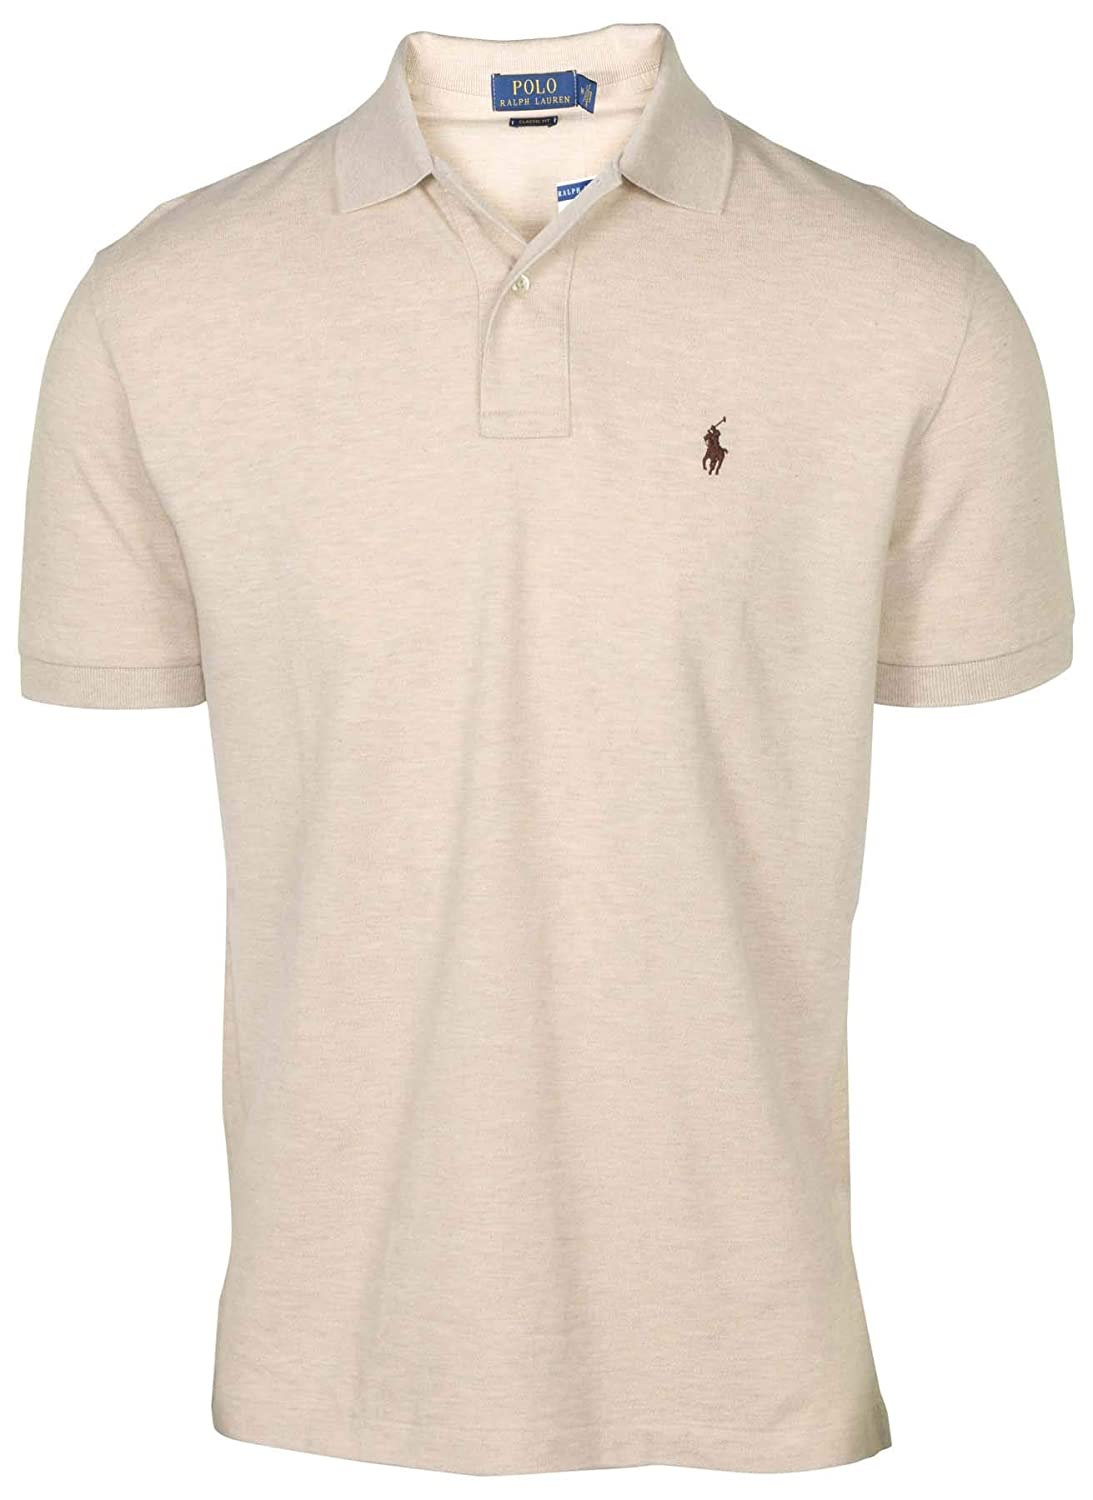 38f7ffc6eebc Polo Ralph Lauren Men's Classic Fit Mesh Polo Shirt at Amazon Men's  Clothing store: